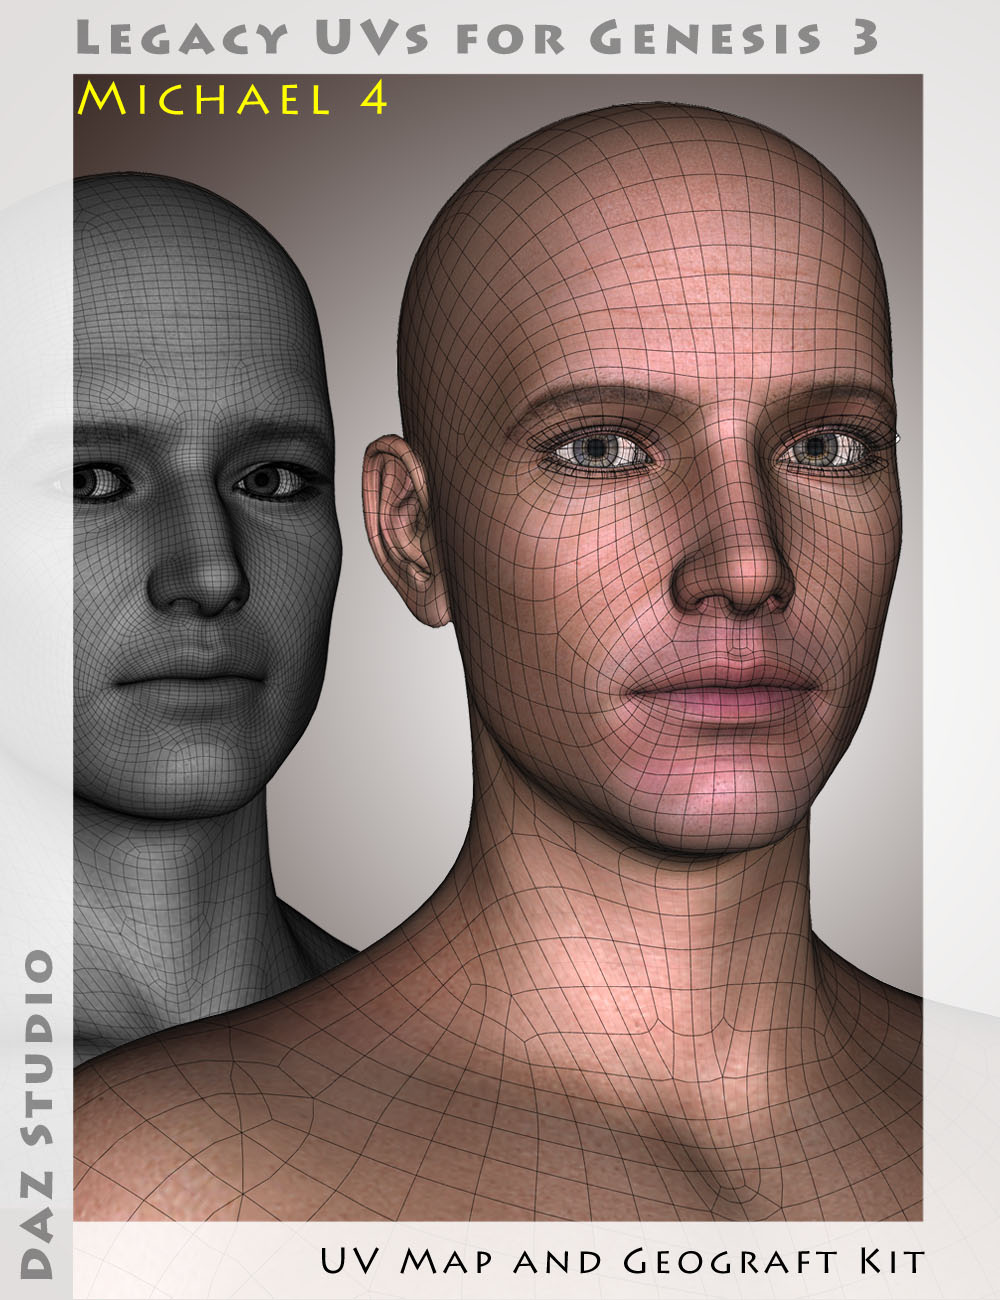 Legacy UVs for Genesis 3: Michael 4 by: Cayman Studios, 3D Models by Daz 3D